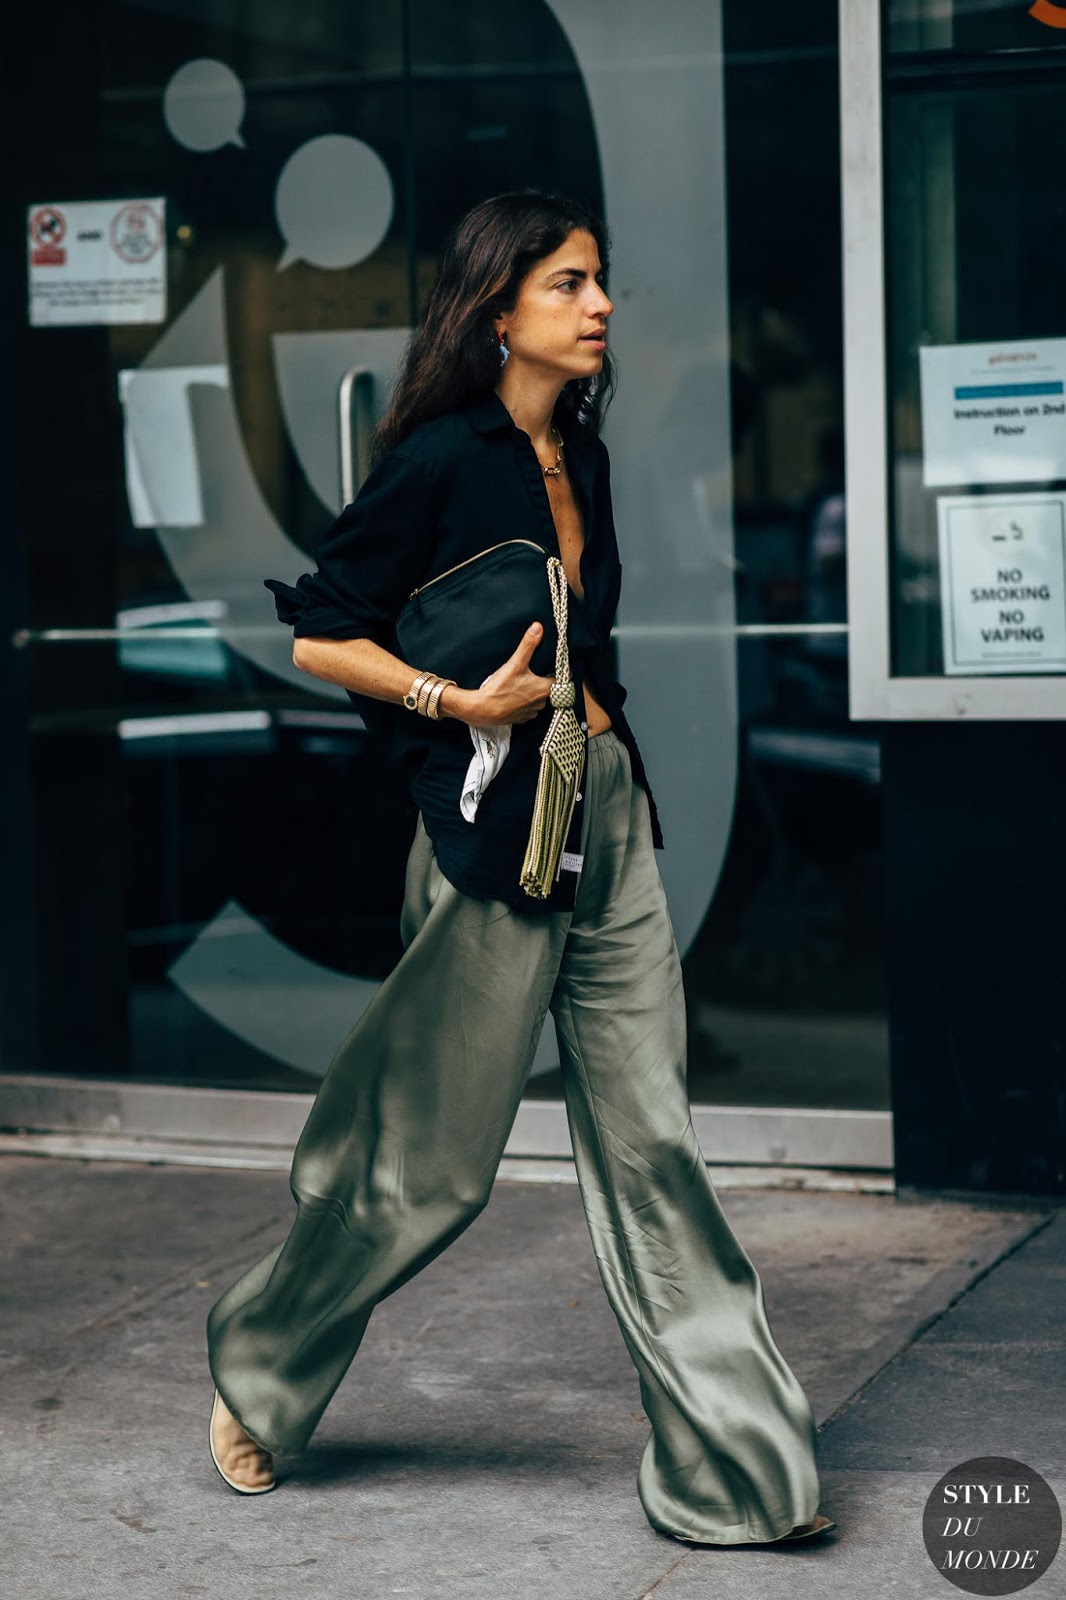 Summer Trends: Fashion Girls Love a Silky Pant